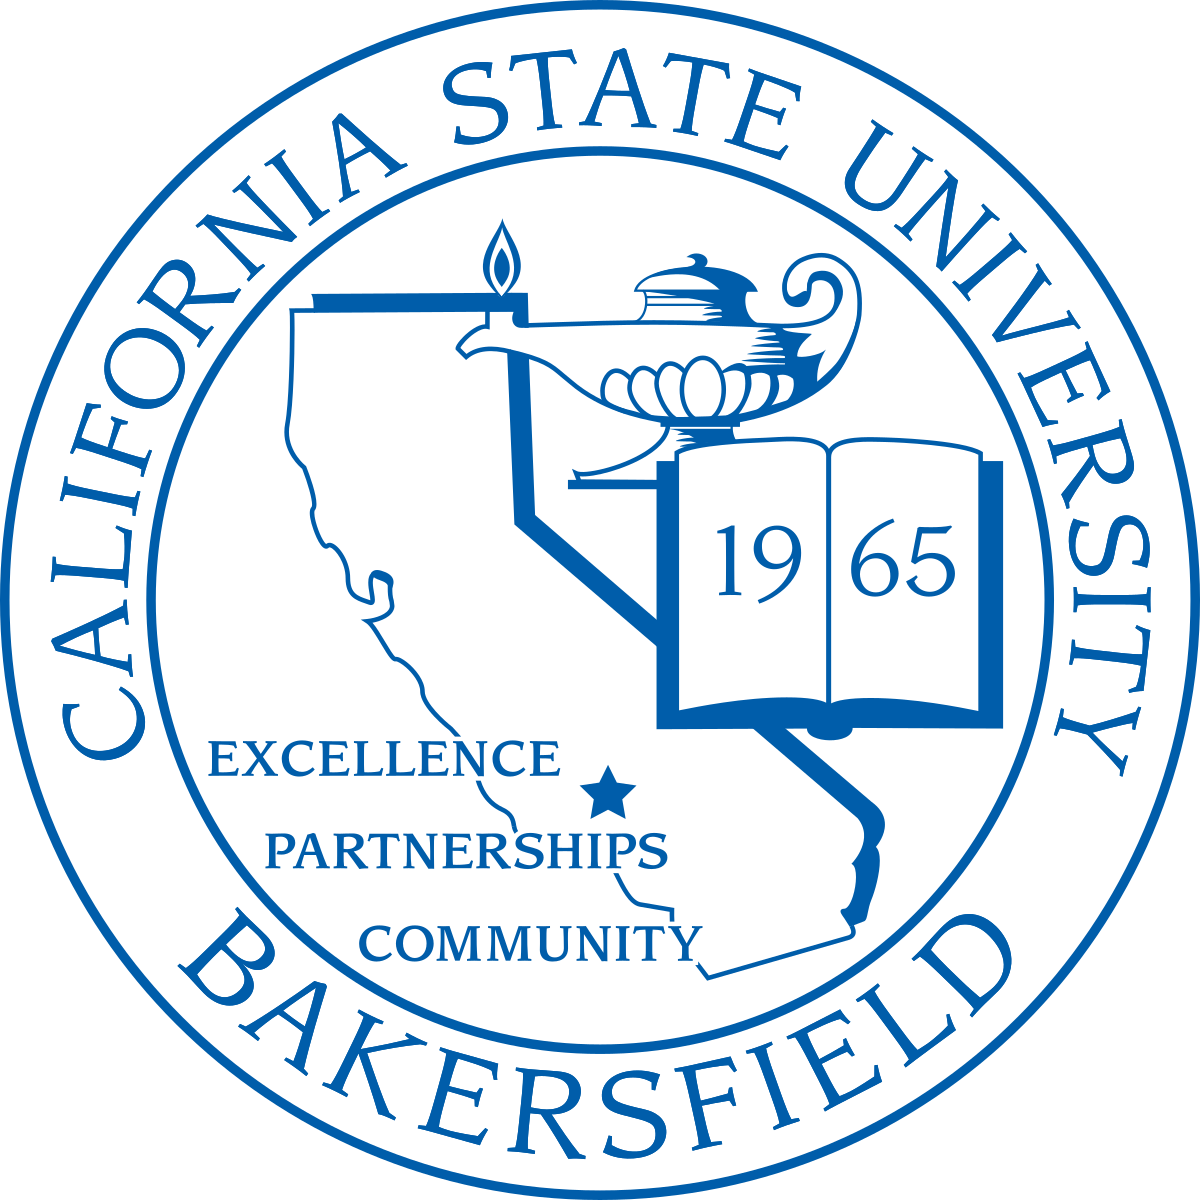 California State University at Bakersfield